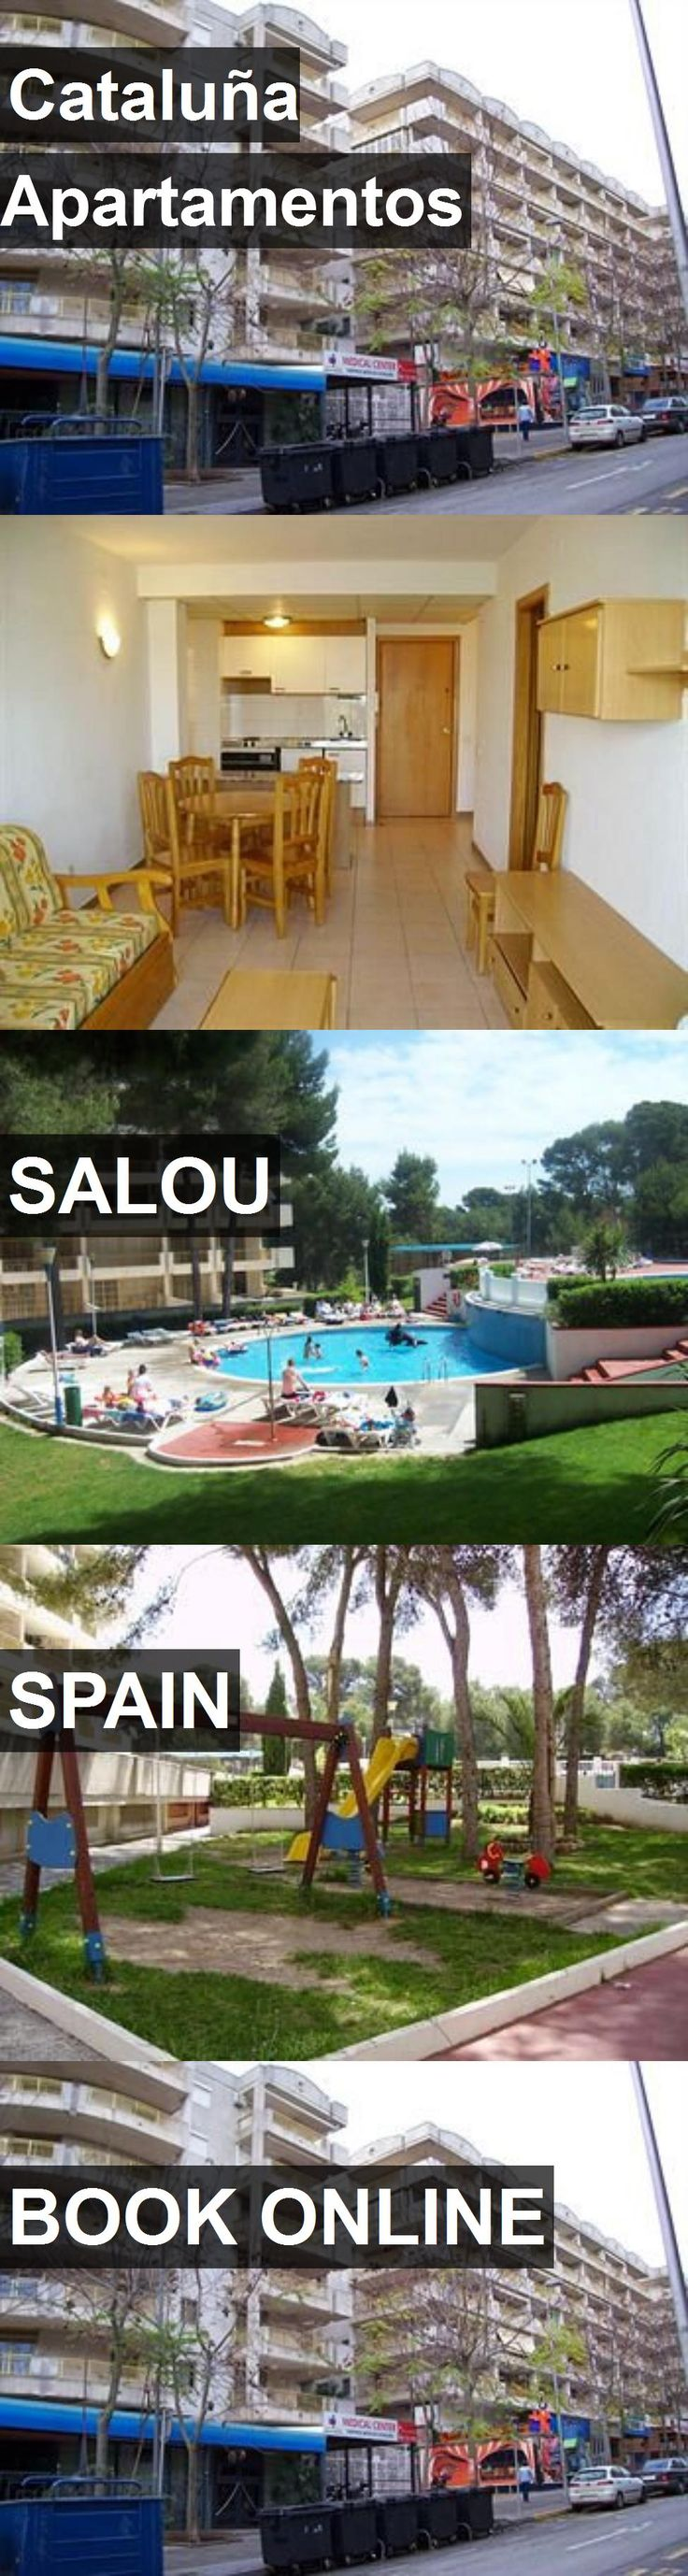 Hotel Cataluña Apartamentos in Salou, Spain. For more information, photos, reviews and best prices please follow the link. #Spain #Salou #travel #vacation #hotel